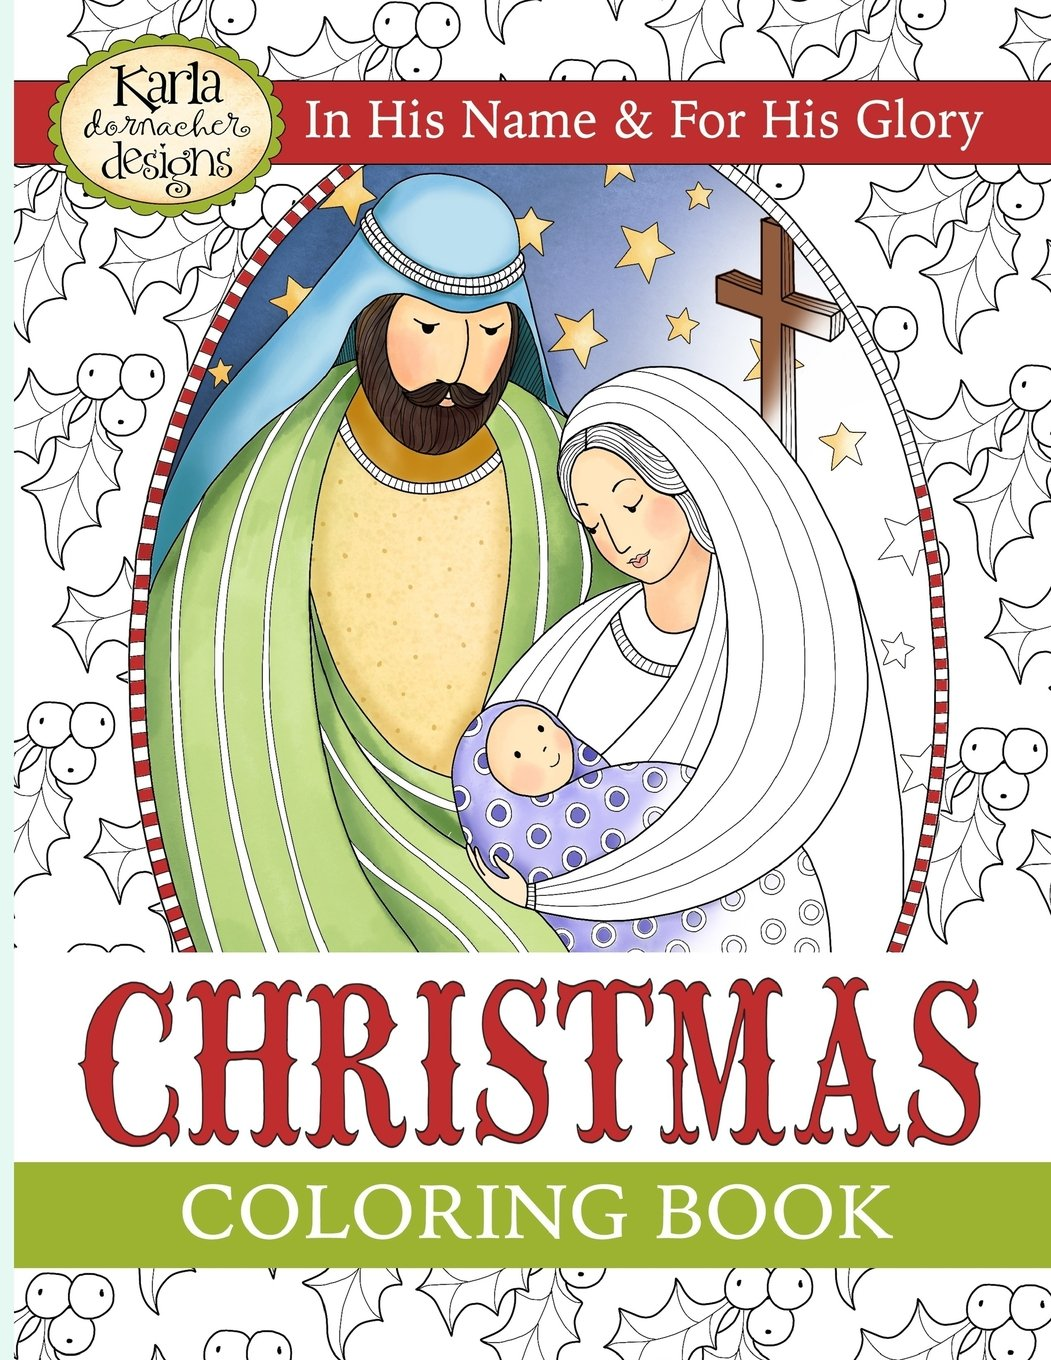 Christmas Coloring Book: In His Name & For His Glory